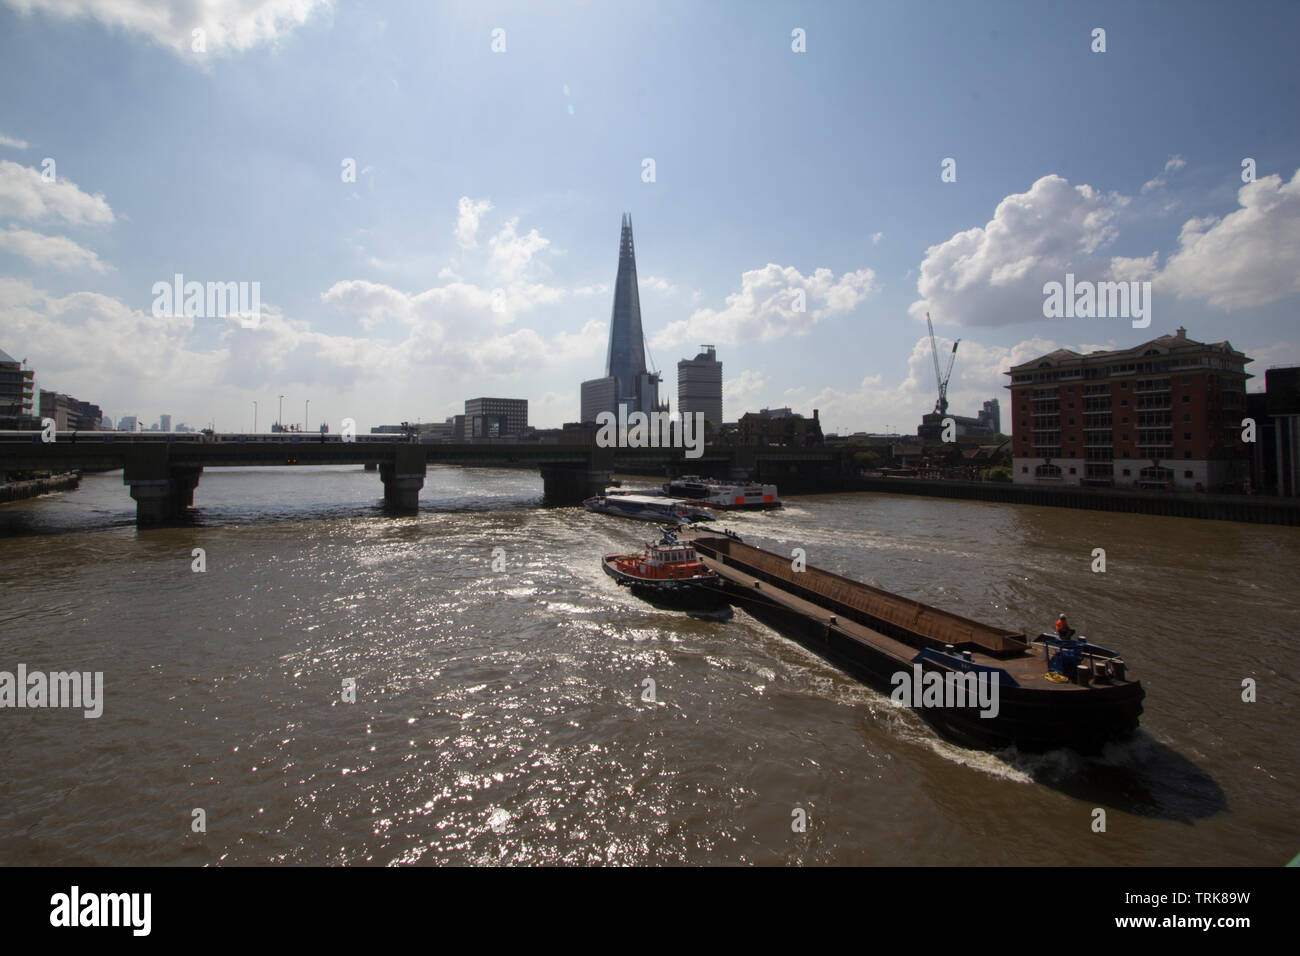 Barge belonging to Cory Environmental, the largest barge operator on the Thames, passes between Cannon Street railway bridge and Southwark Bridge on the River Thames, with tug boat and Shard in background - Stock Image